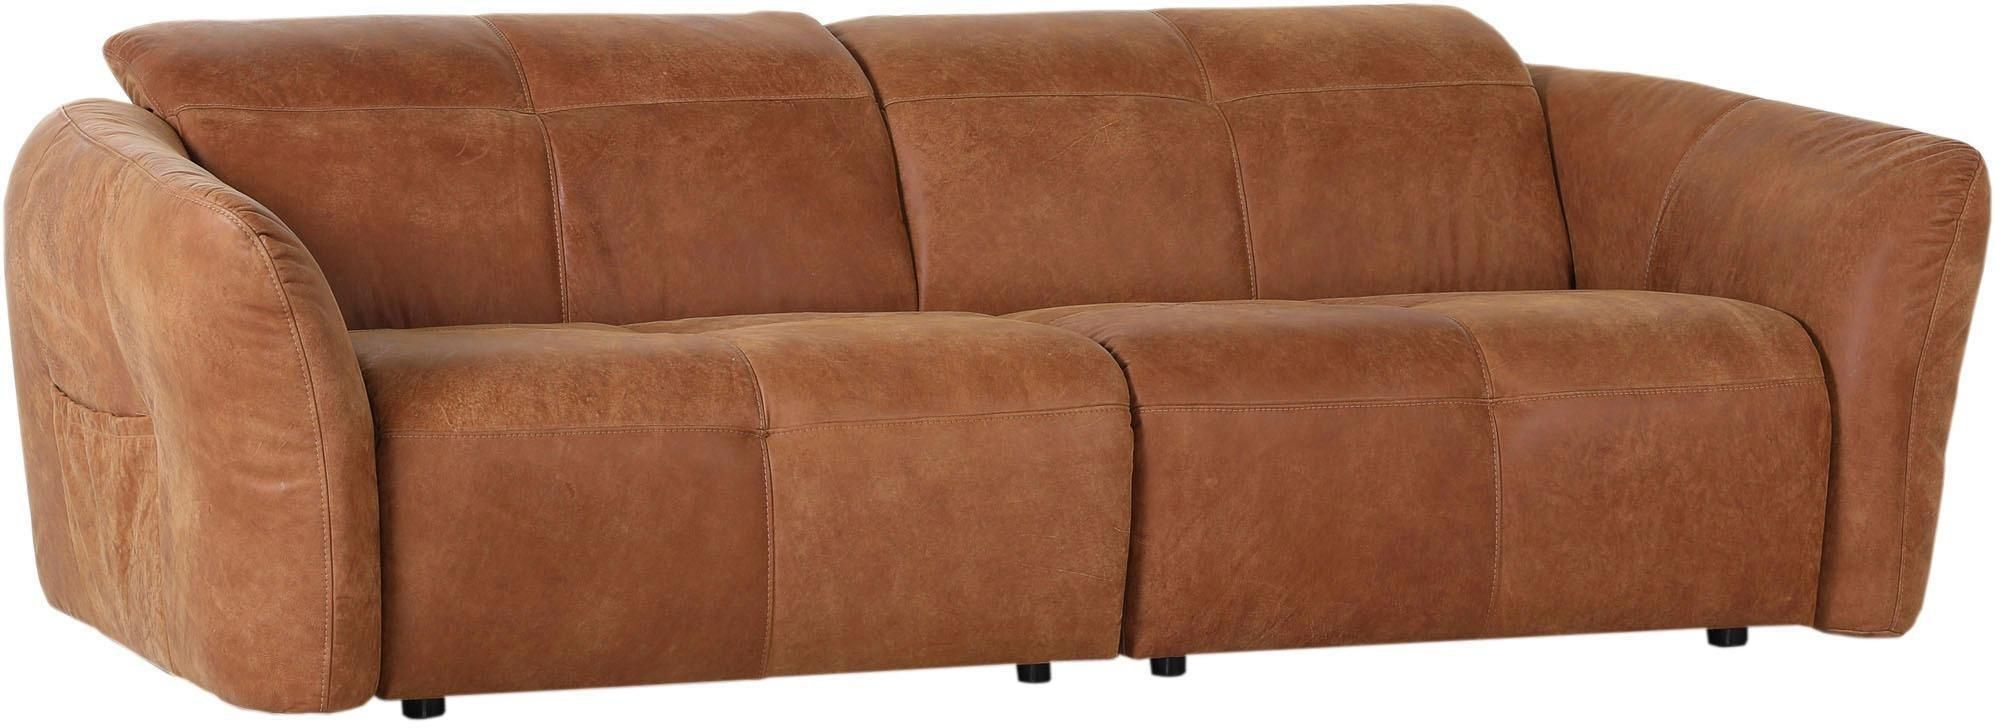 Sofa Veloursleder Home Affaire Big-sofa Arkansas | Große Sofas, Landhaus Möbel, Haus